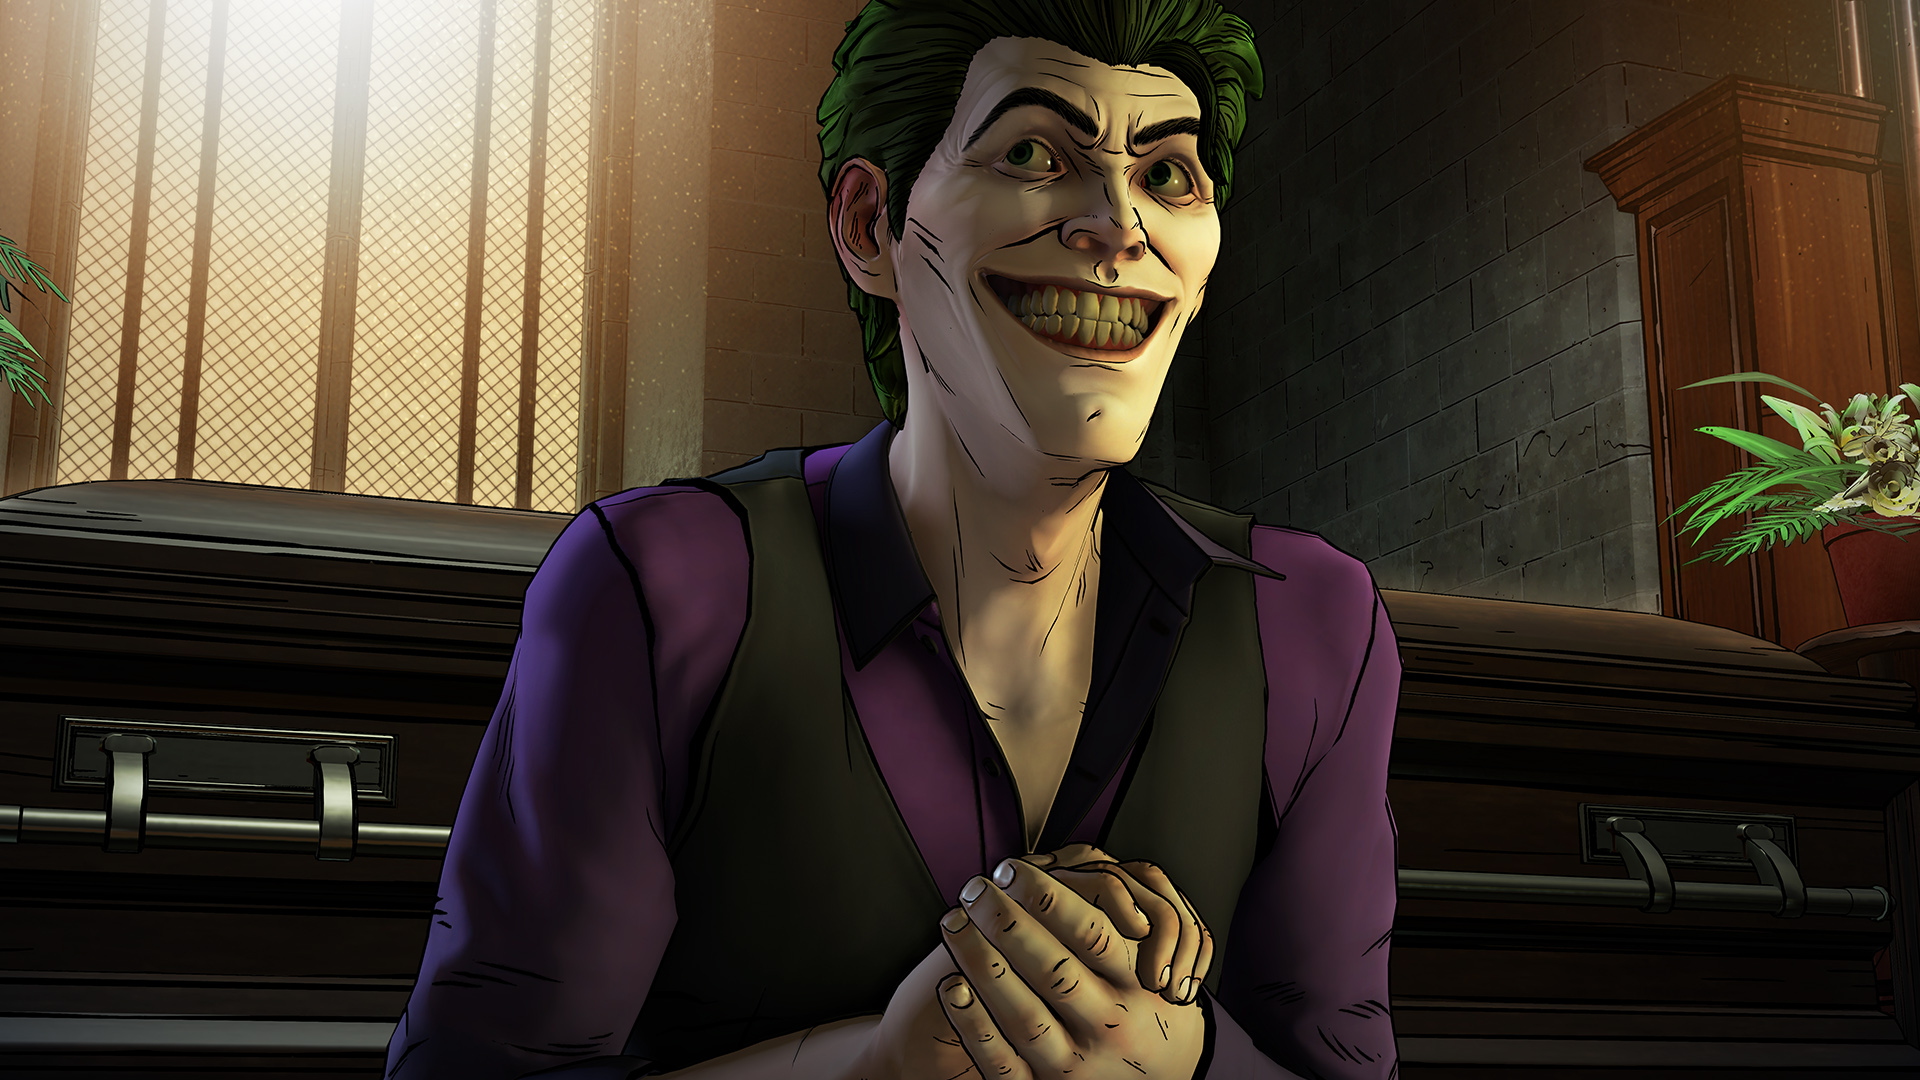 The pale-face and green-haired John Doe, in Batman: The Enemy Within.